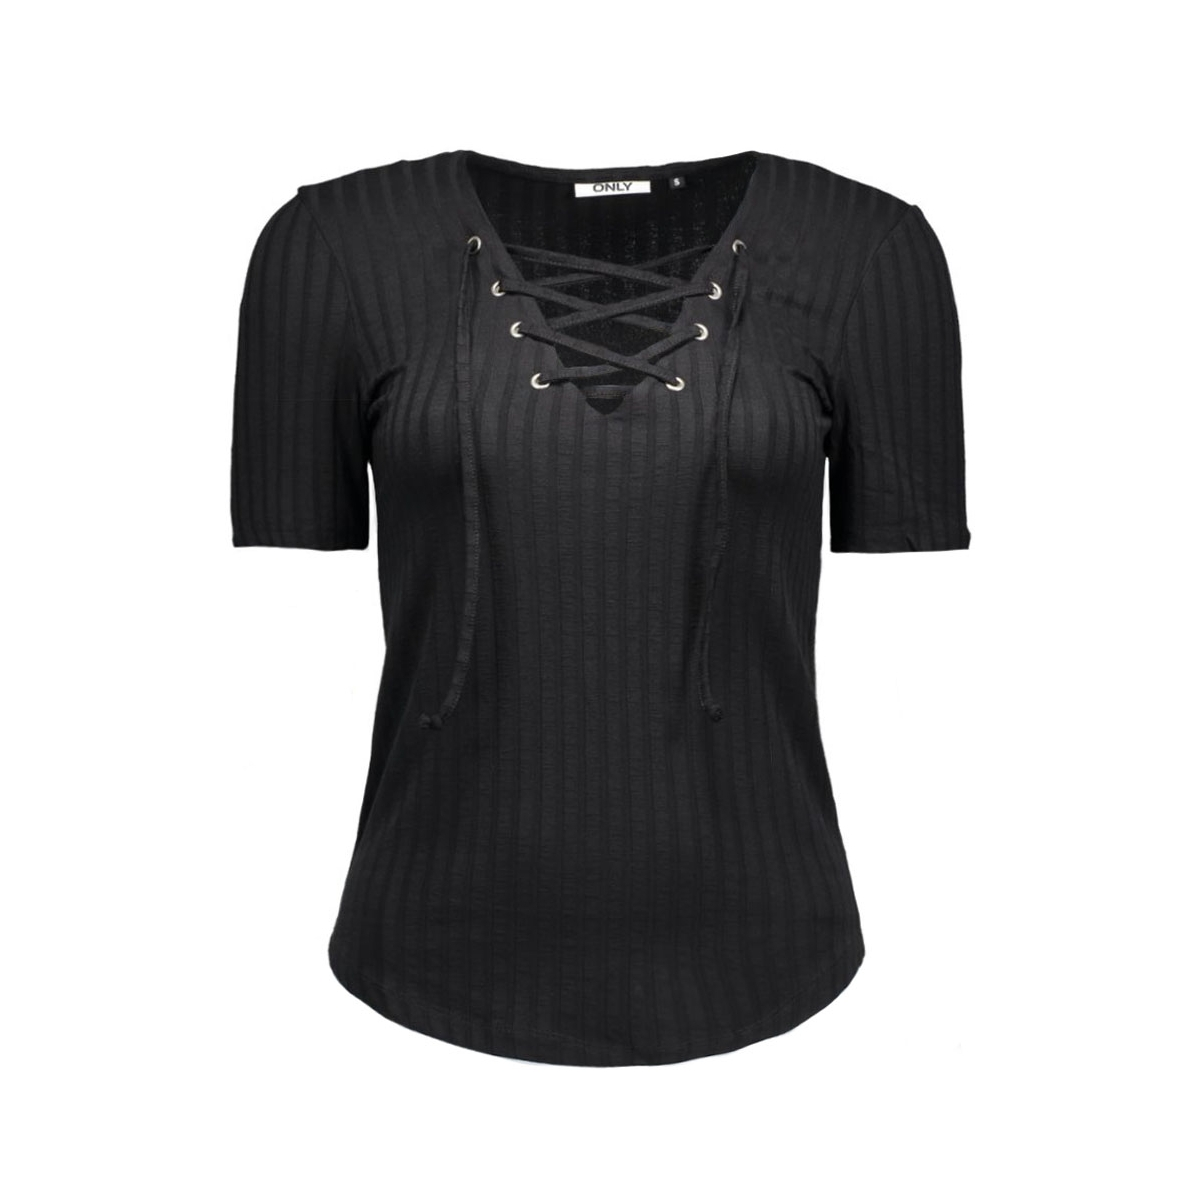 onlcool ripsi lace up 2/4 top noos 15127861 only t-shirt black